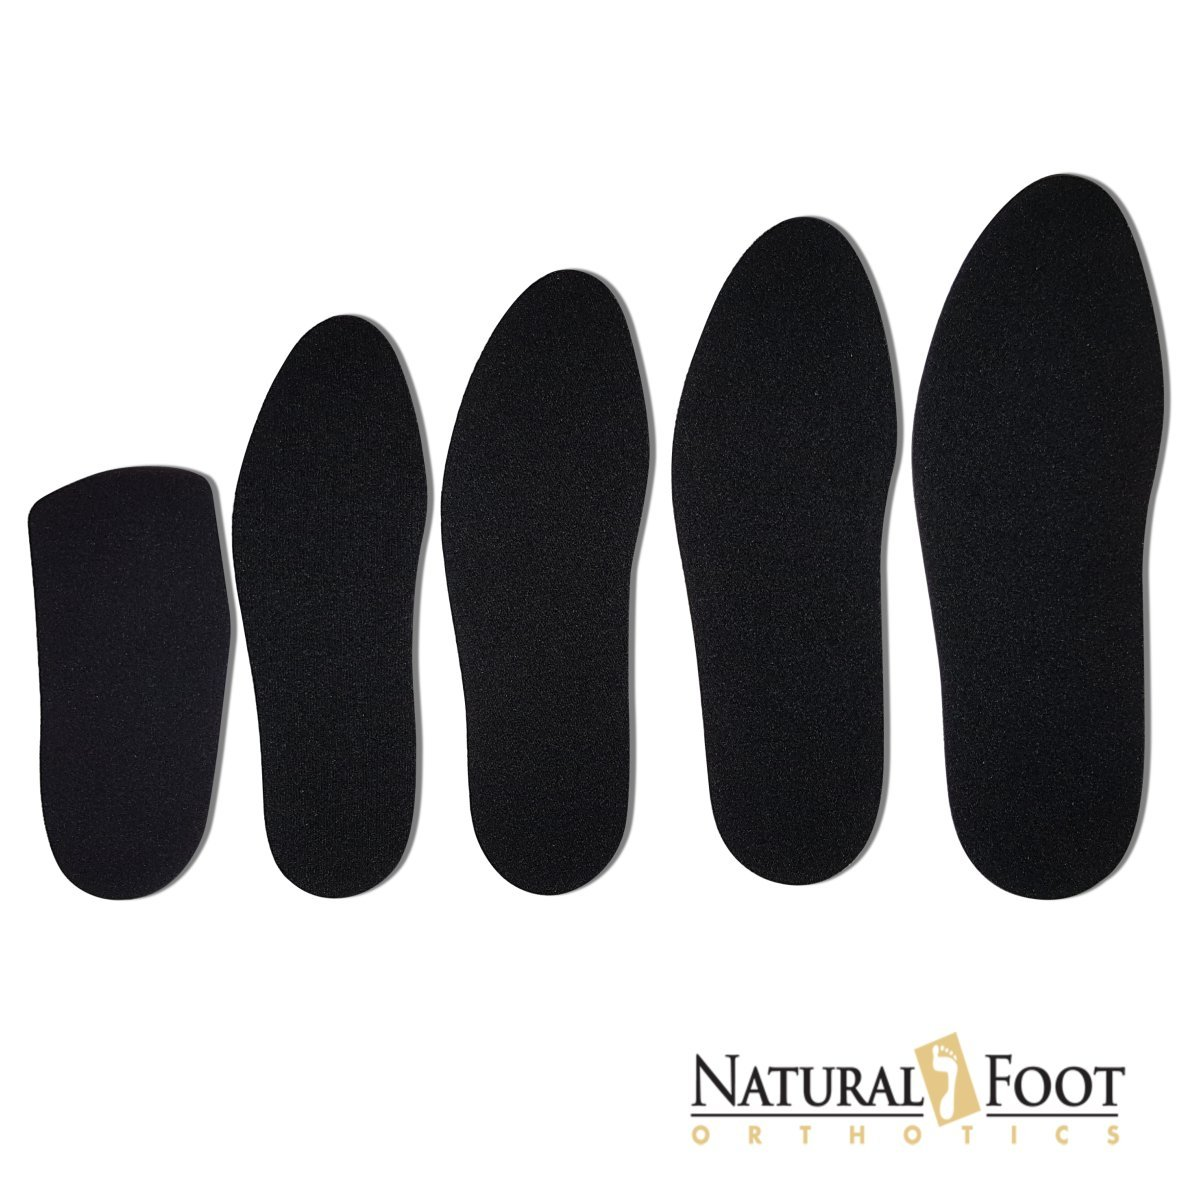 Natural Foot Orthotic Cushions, Natural Sponge Rubber Cushions with a Nylon Covering perfect to be worn over orthotic arch support insoles. Womens Size 8